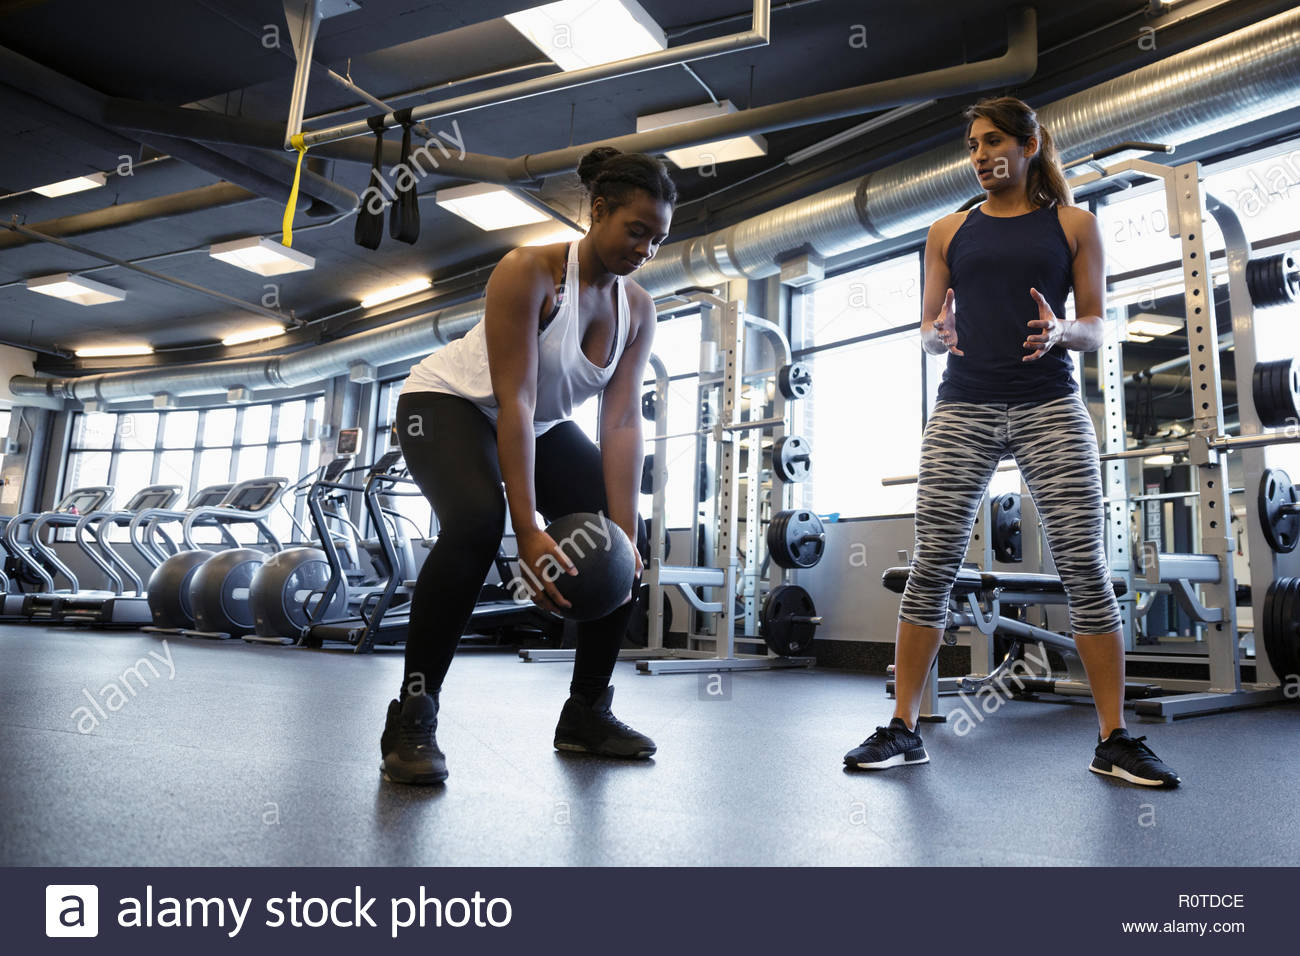 Personal trainer helping woman exercising with medicine ball in gym - Stock Image